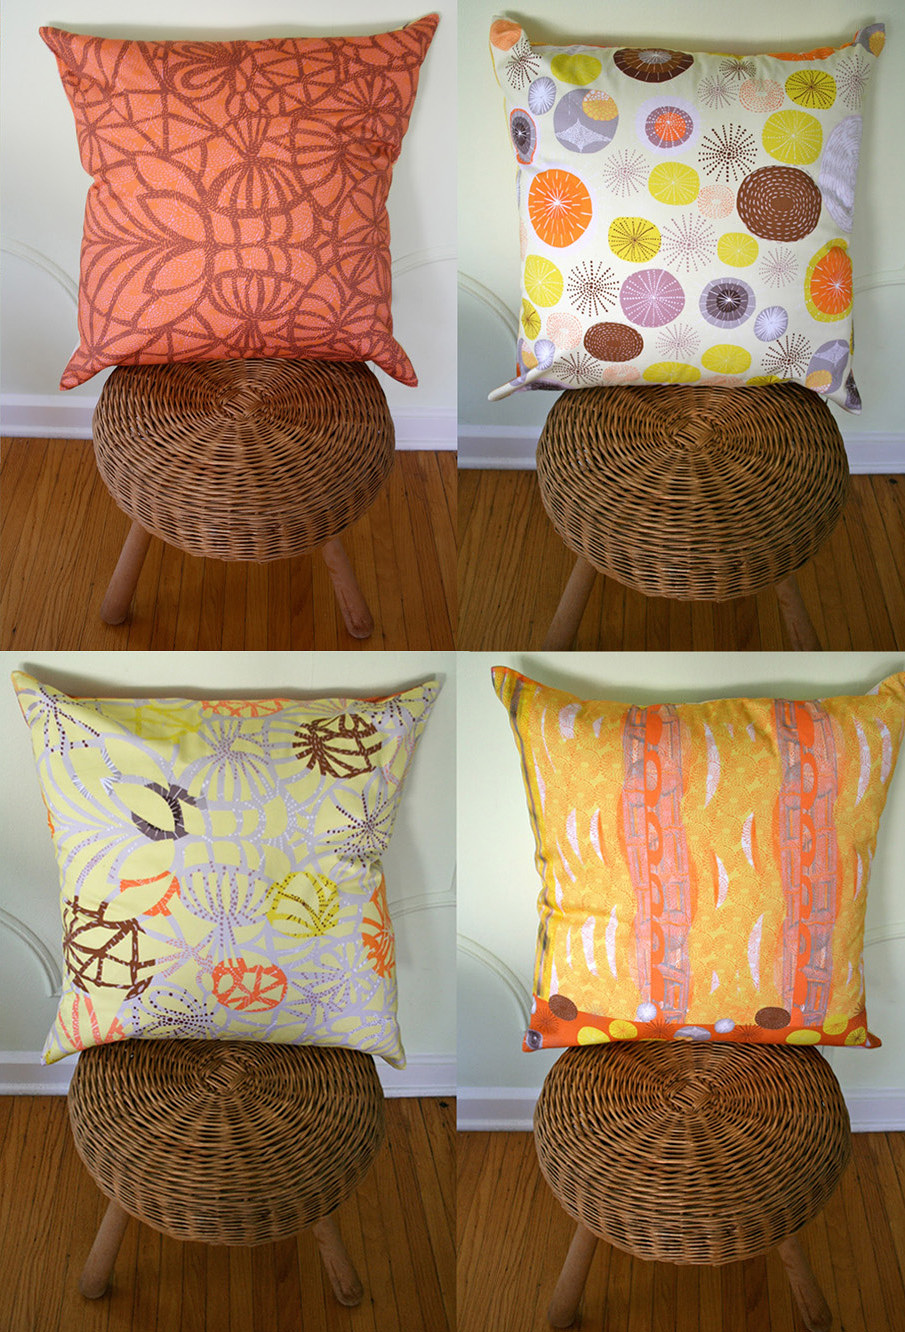 PageImage-523187-4879668-pillows3.jpg